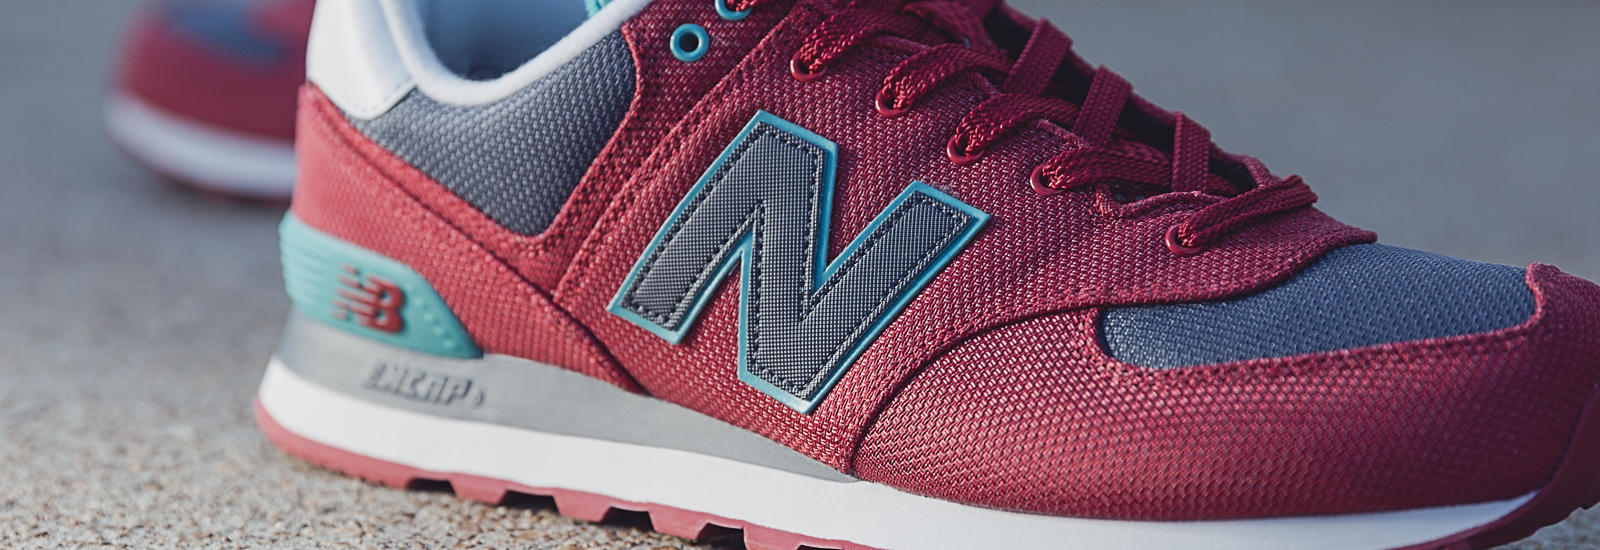 new balance ml574wna